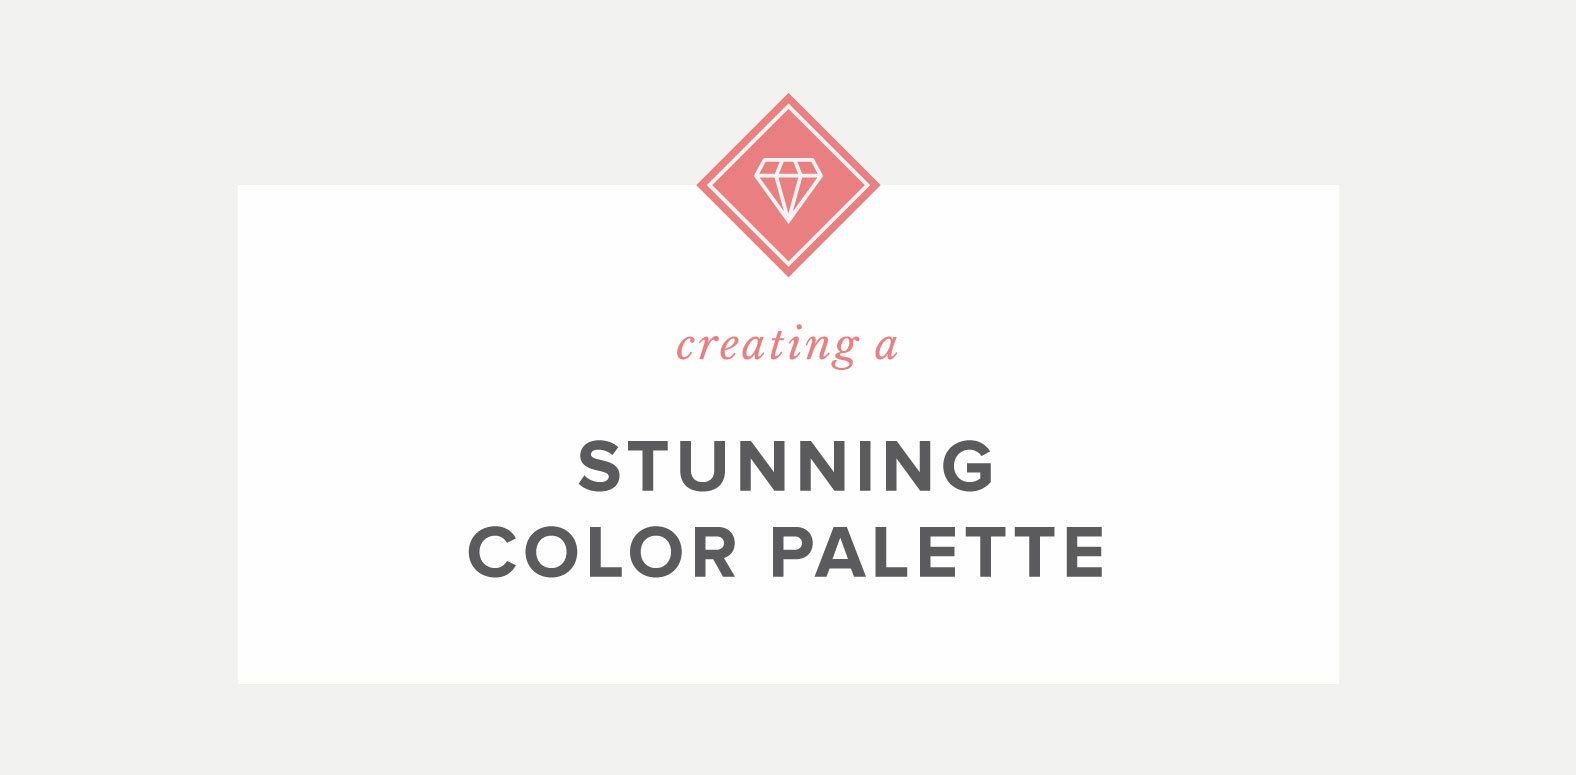 Creating A Stunning Color Palette